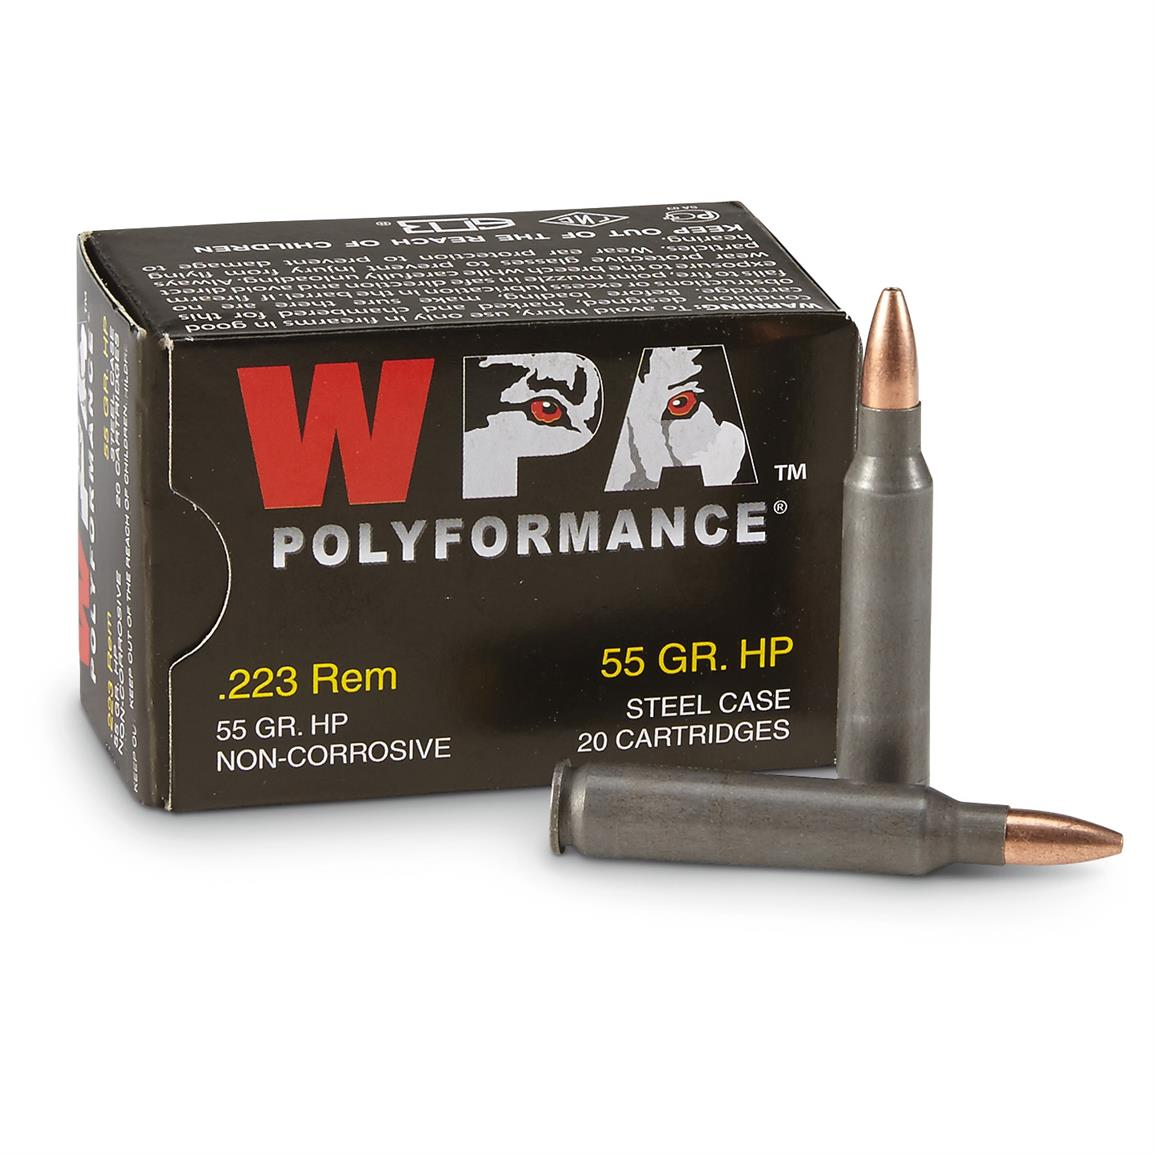 Wolf WPA Polyformance, .223 Remington, HP, 55 Grain, 240 Rounds